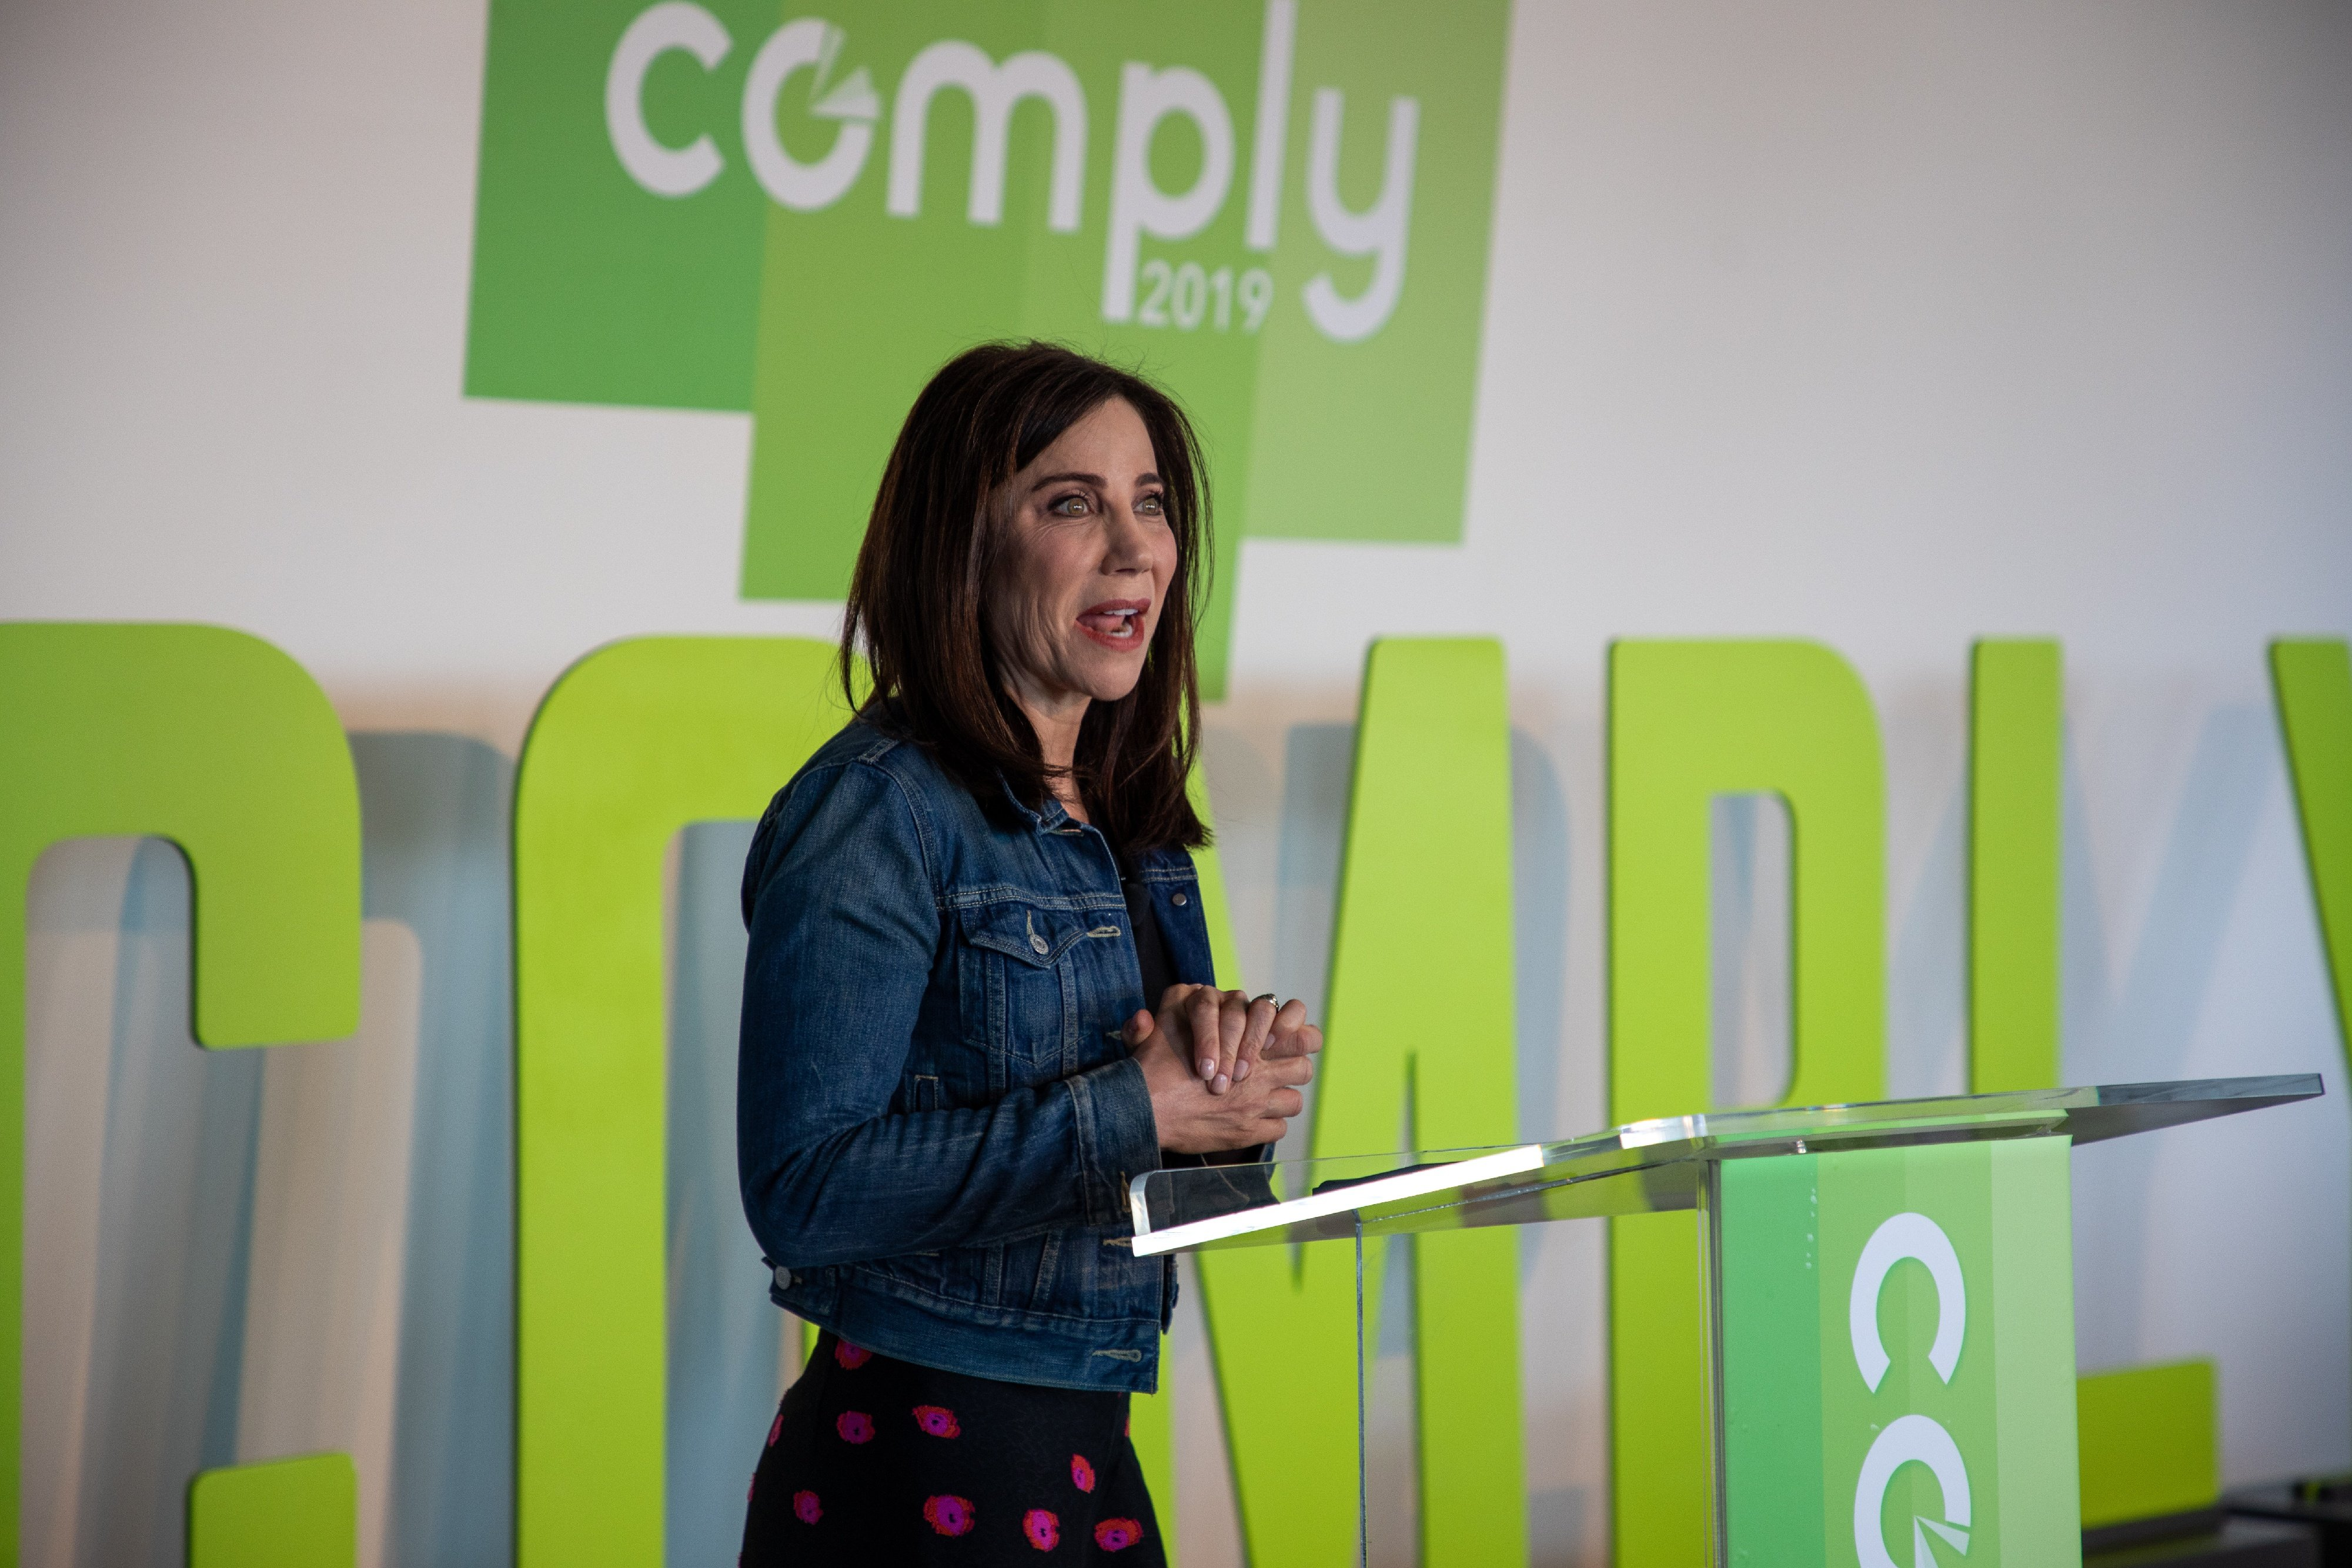 COMPLY2019 Inspirational Keynote Recap: The Fearless Alison Levine